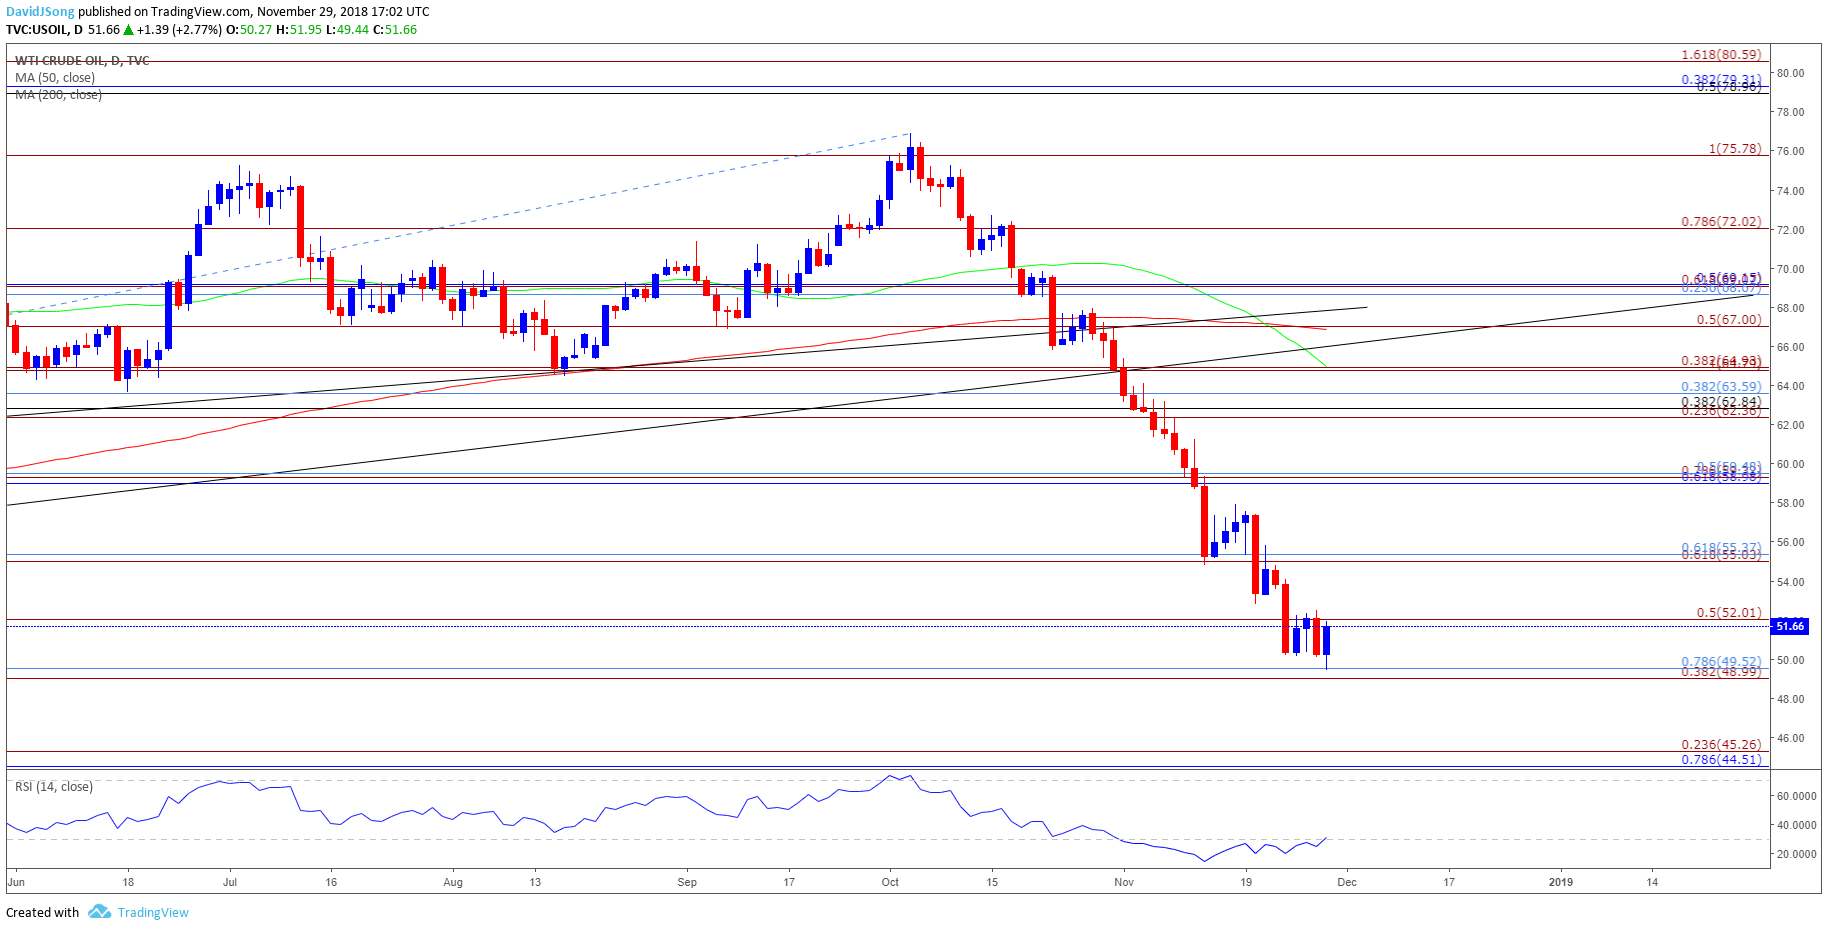 Oil Price Forecast: RSI on Cusp of Flashing Buy-Signal